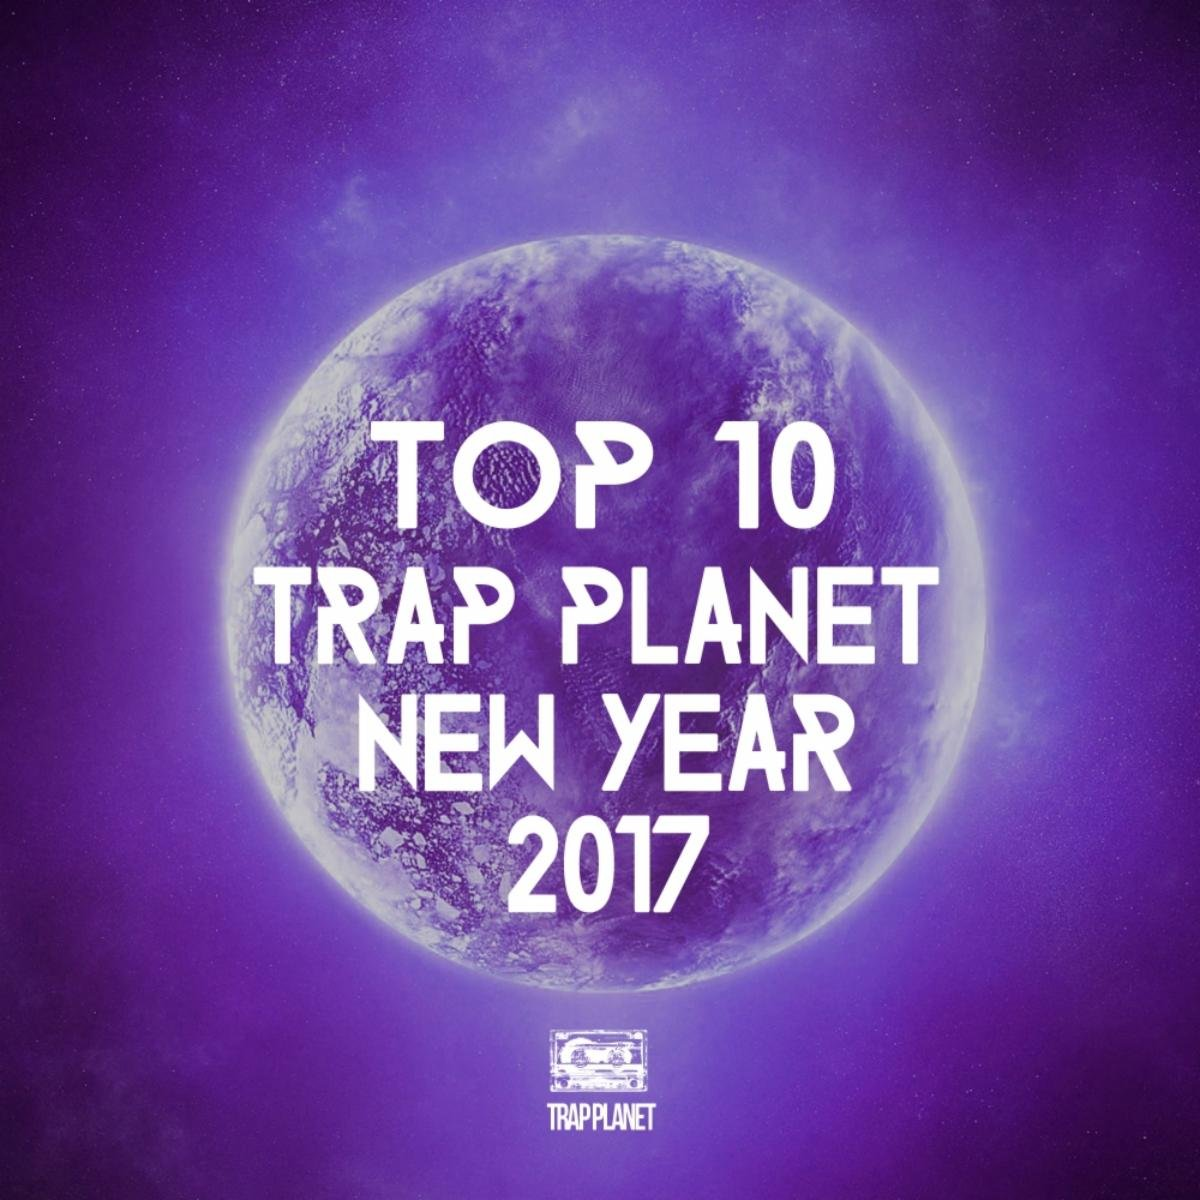 Top 10 Trap Planet New Year 2017